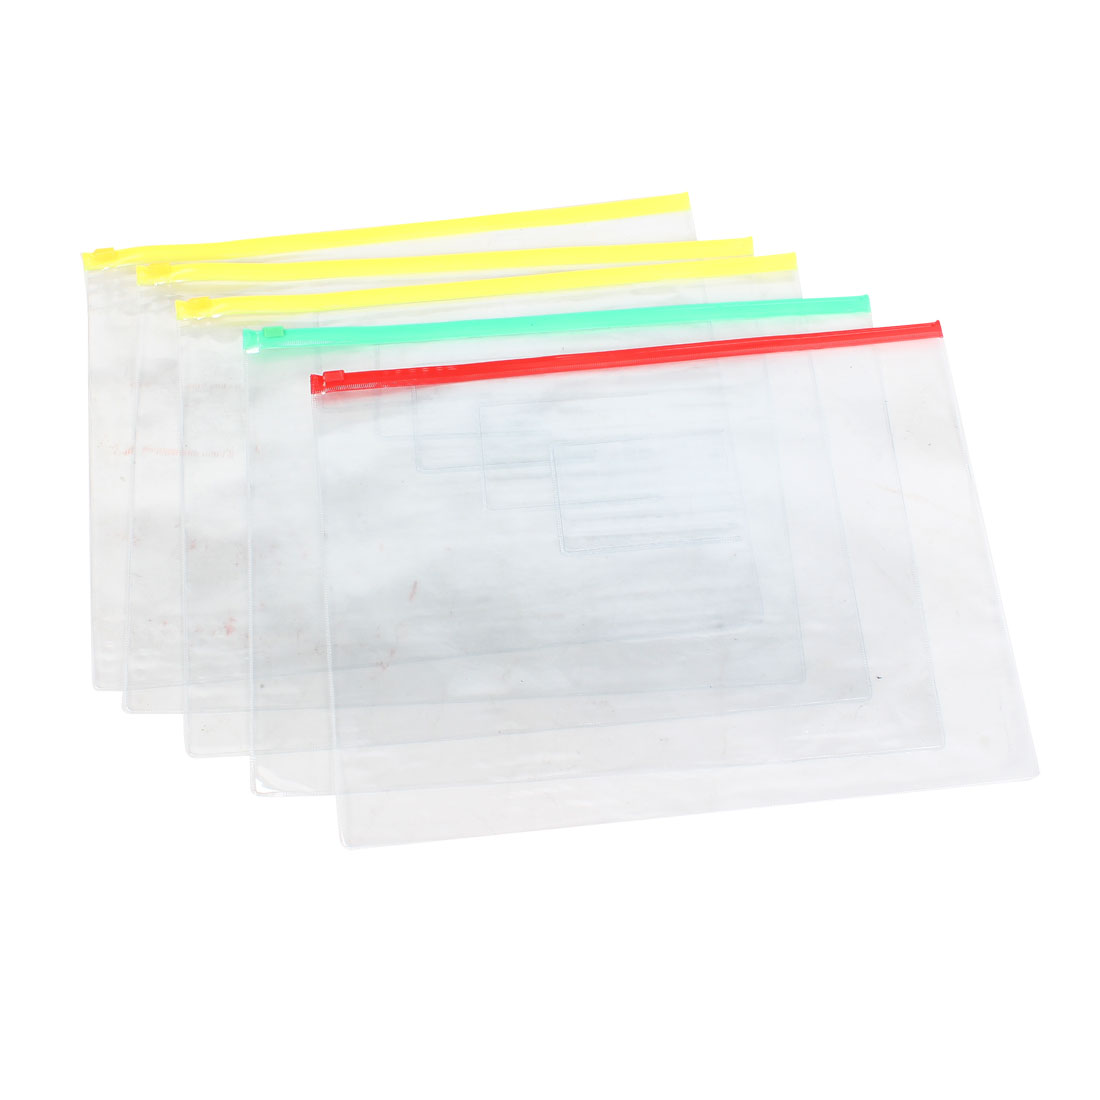 Plastic Water Resistant Pen A4 File Papers Ziplock Bags Folders Clear 5 Pcs